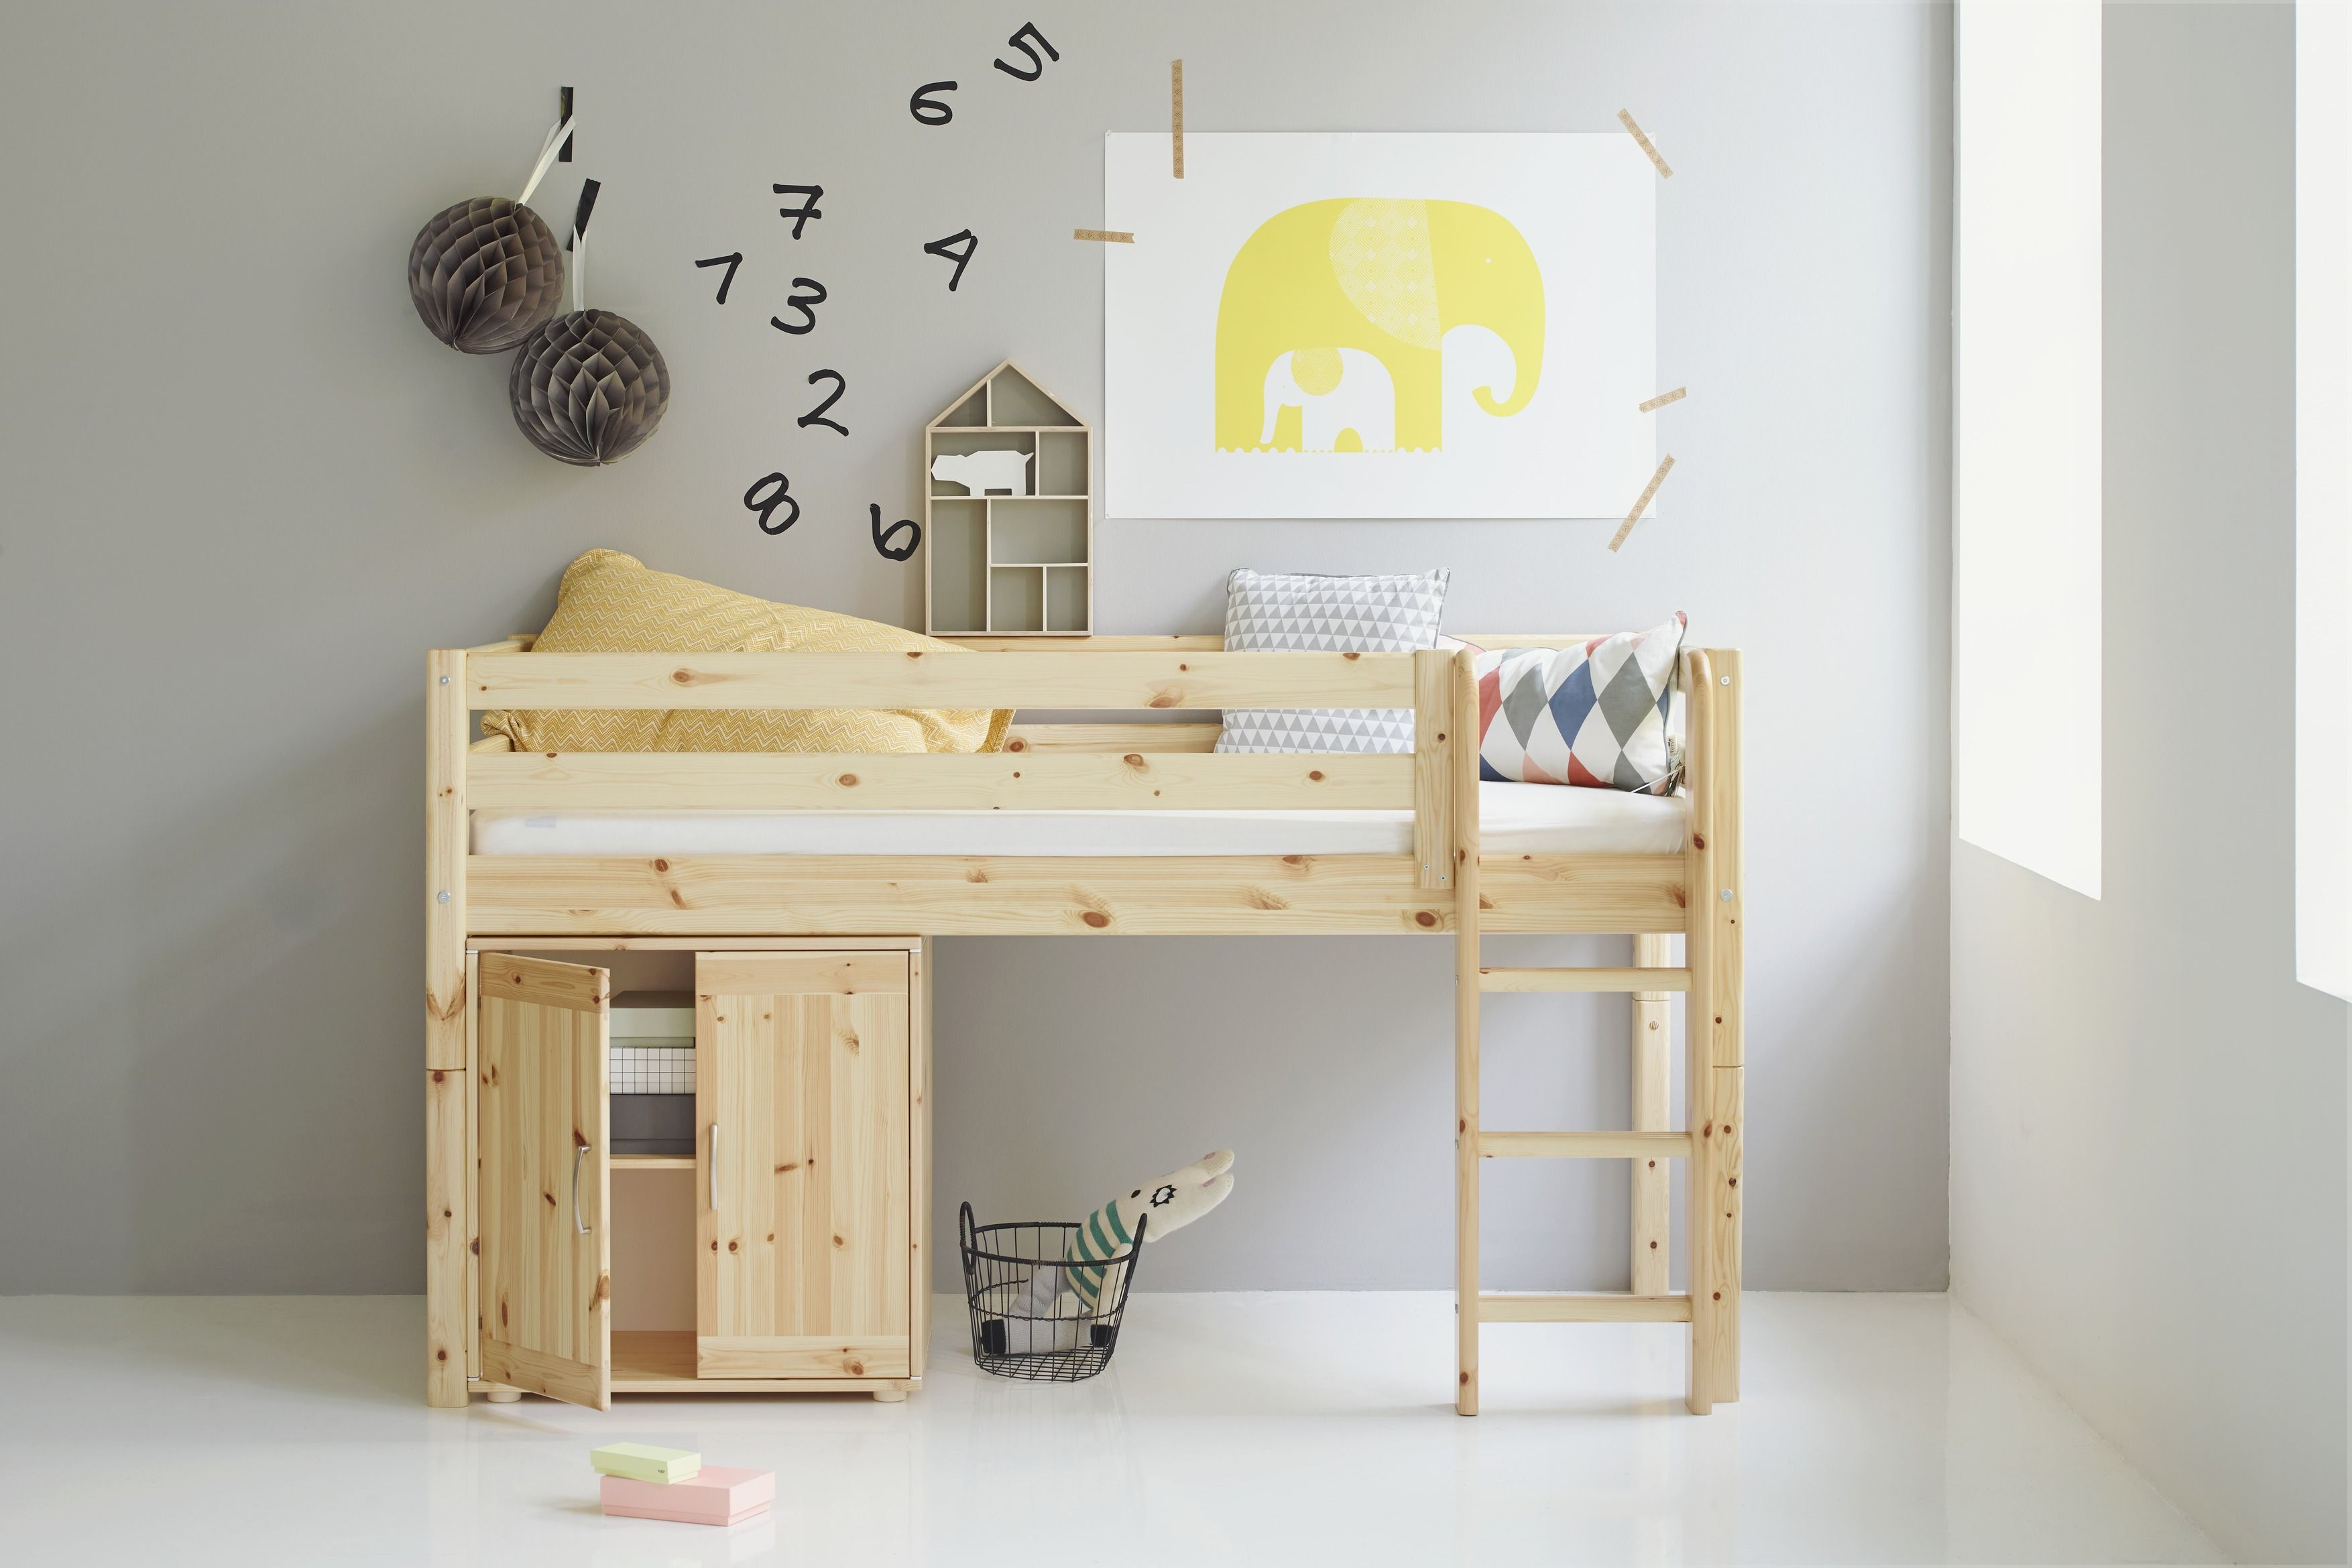 flexa classic pinterest kinderzimmer kommode und weiss. Black Bedroom Furniture Sets. Home Design Ideas